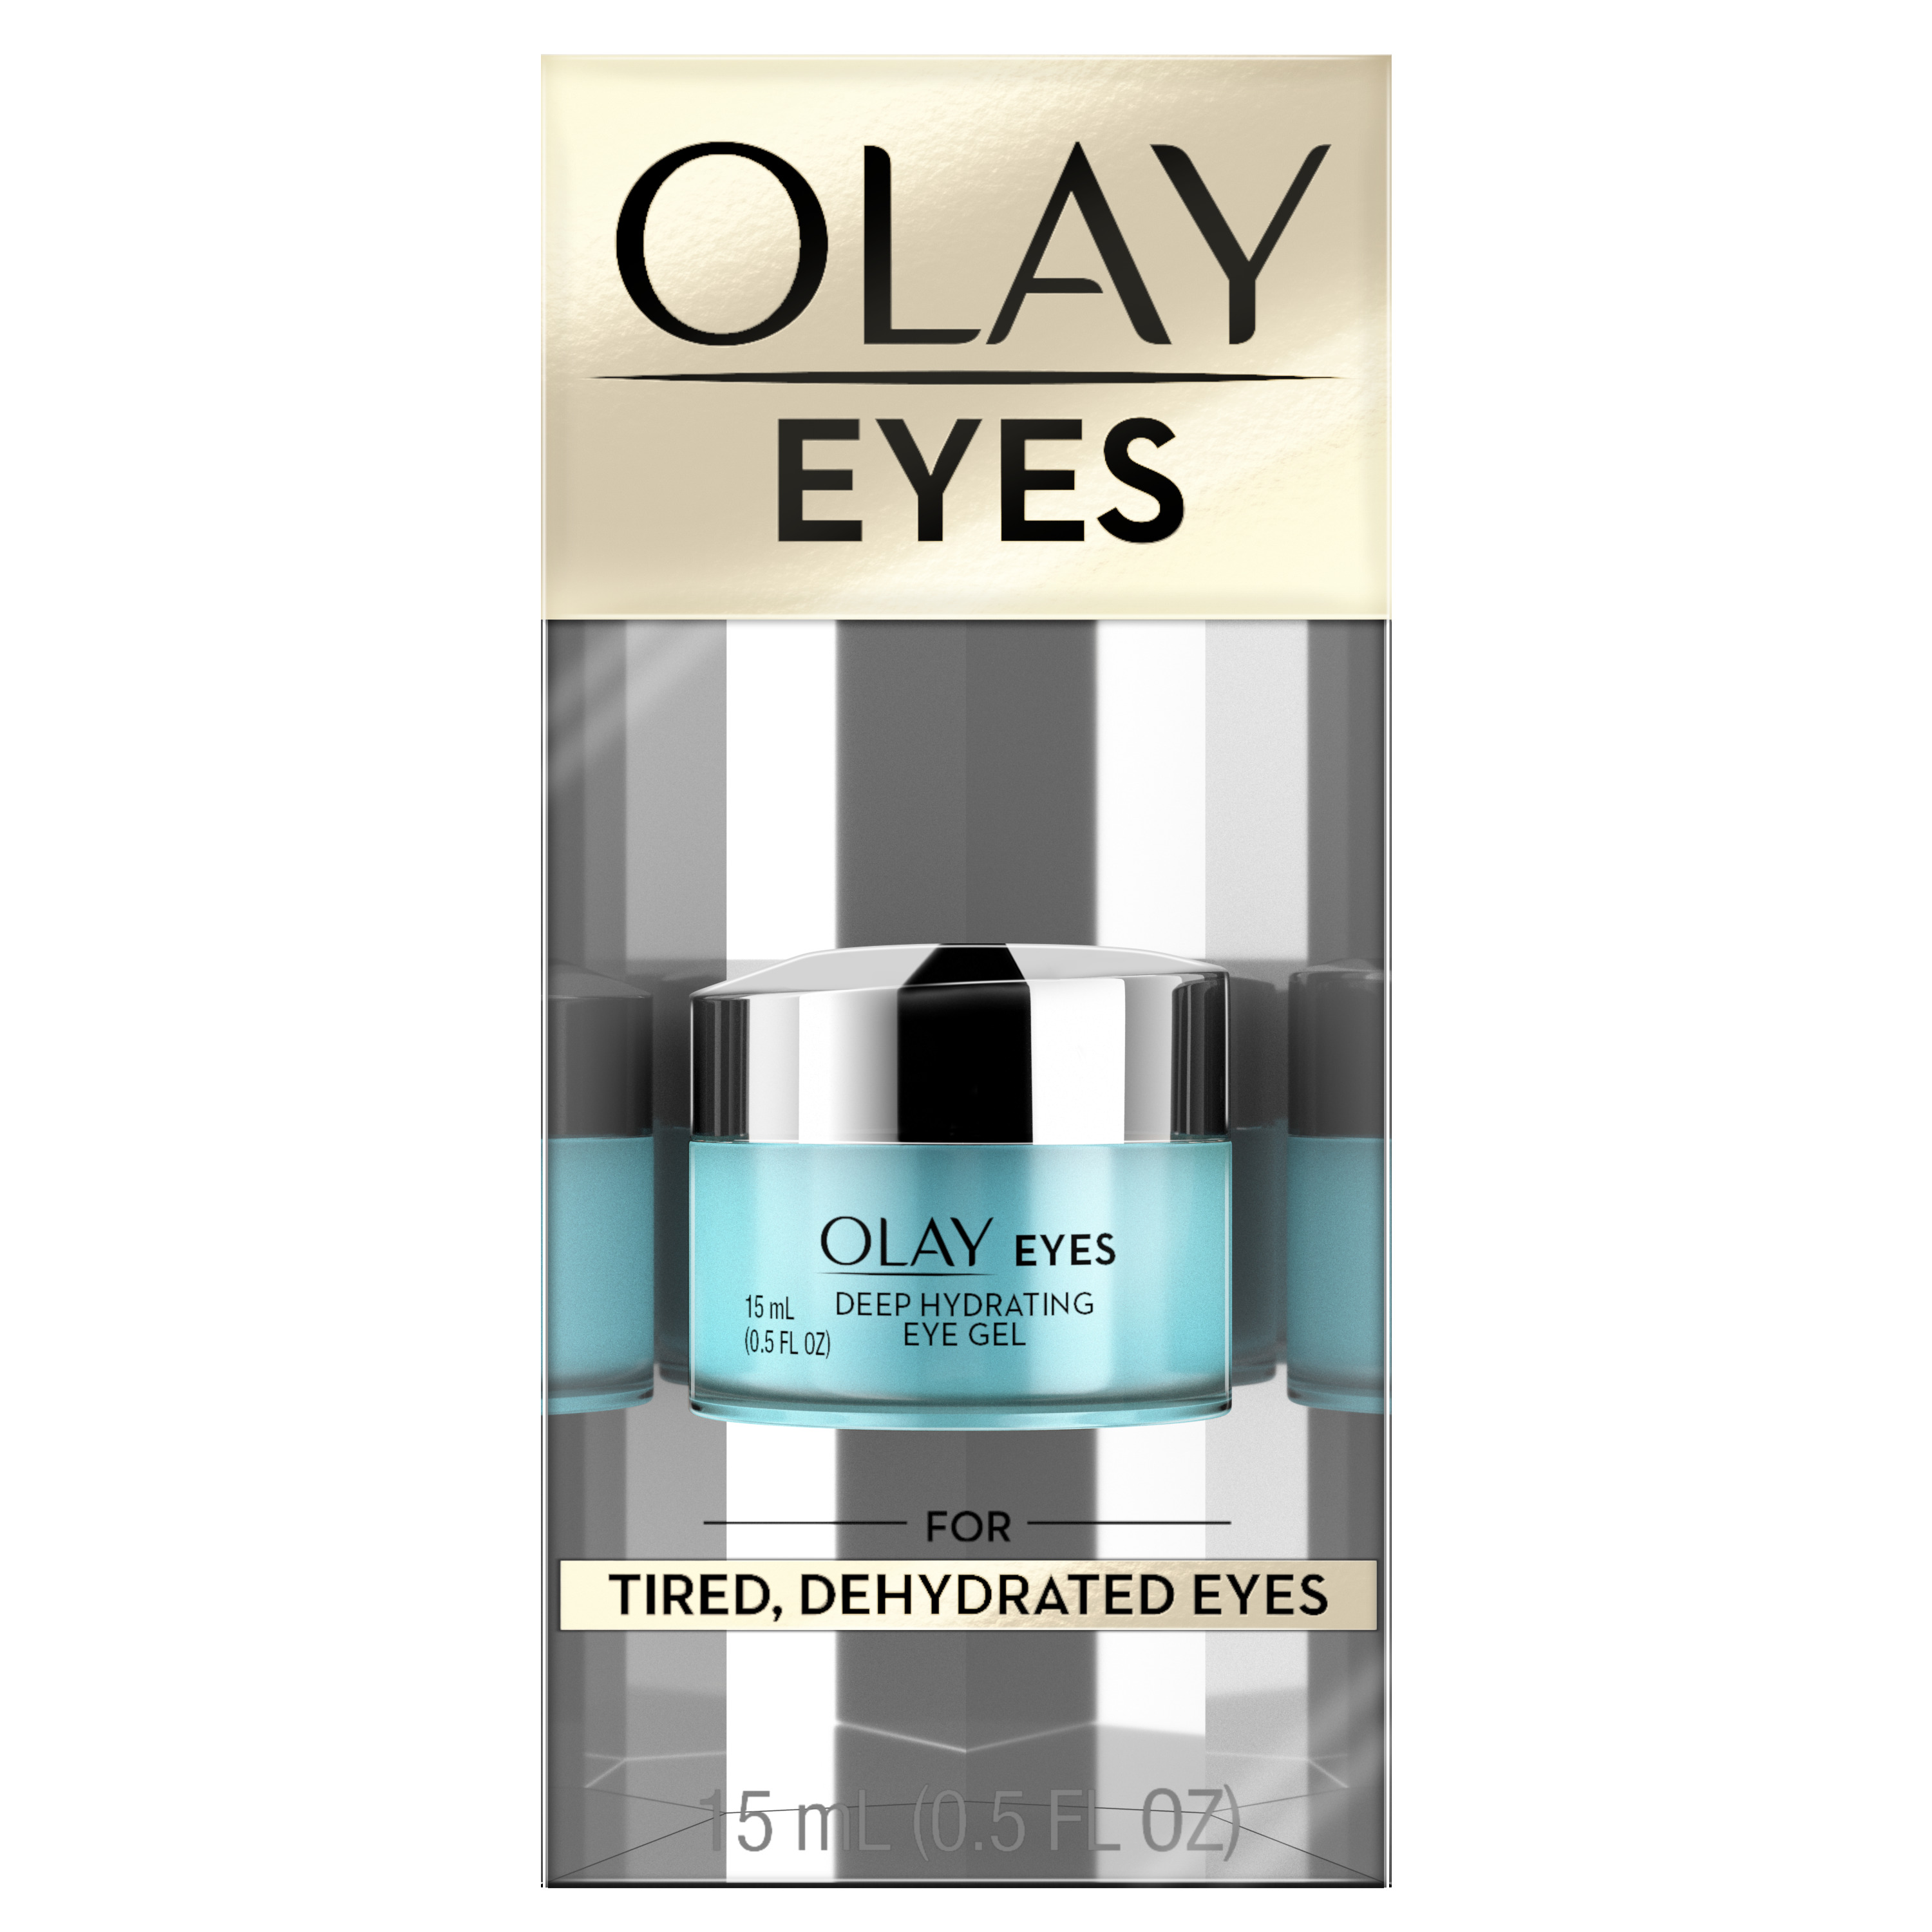 Olay Eyes Deep Hydrating Eye Gel with Hyaluronic Acid, 0.5 fl oz